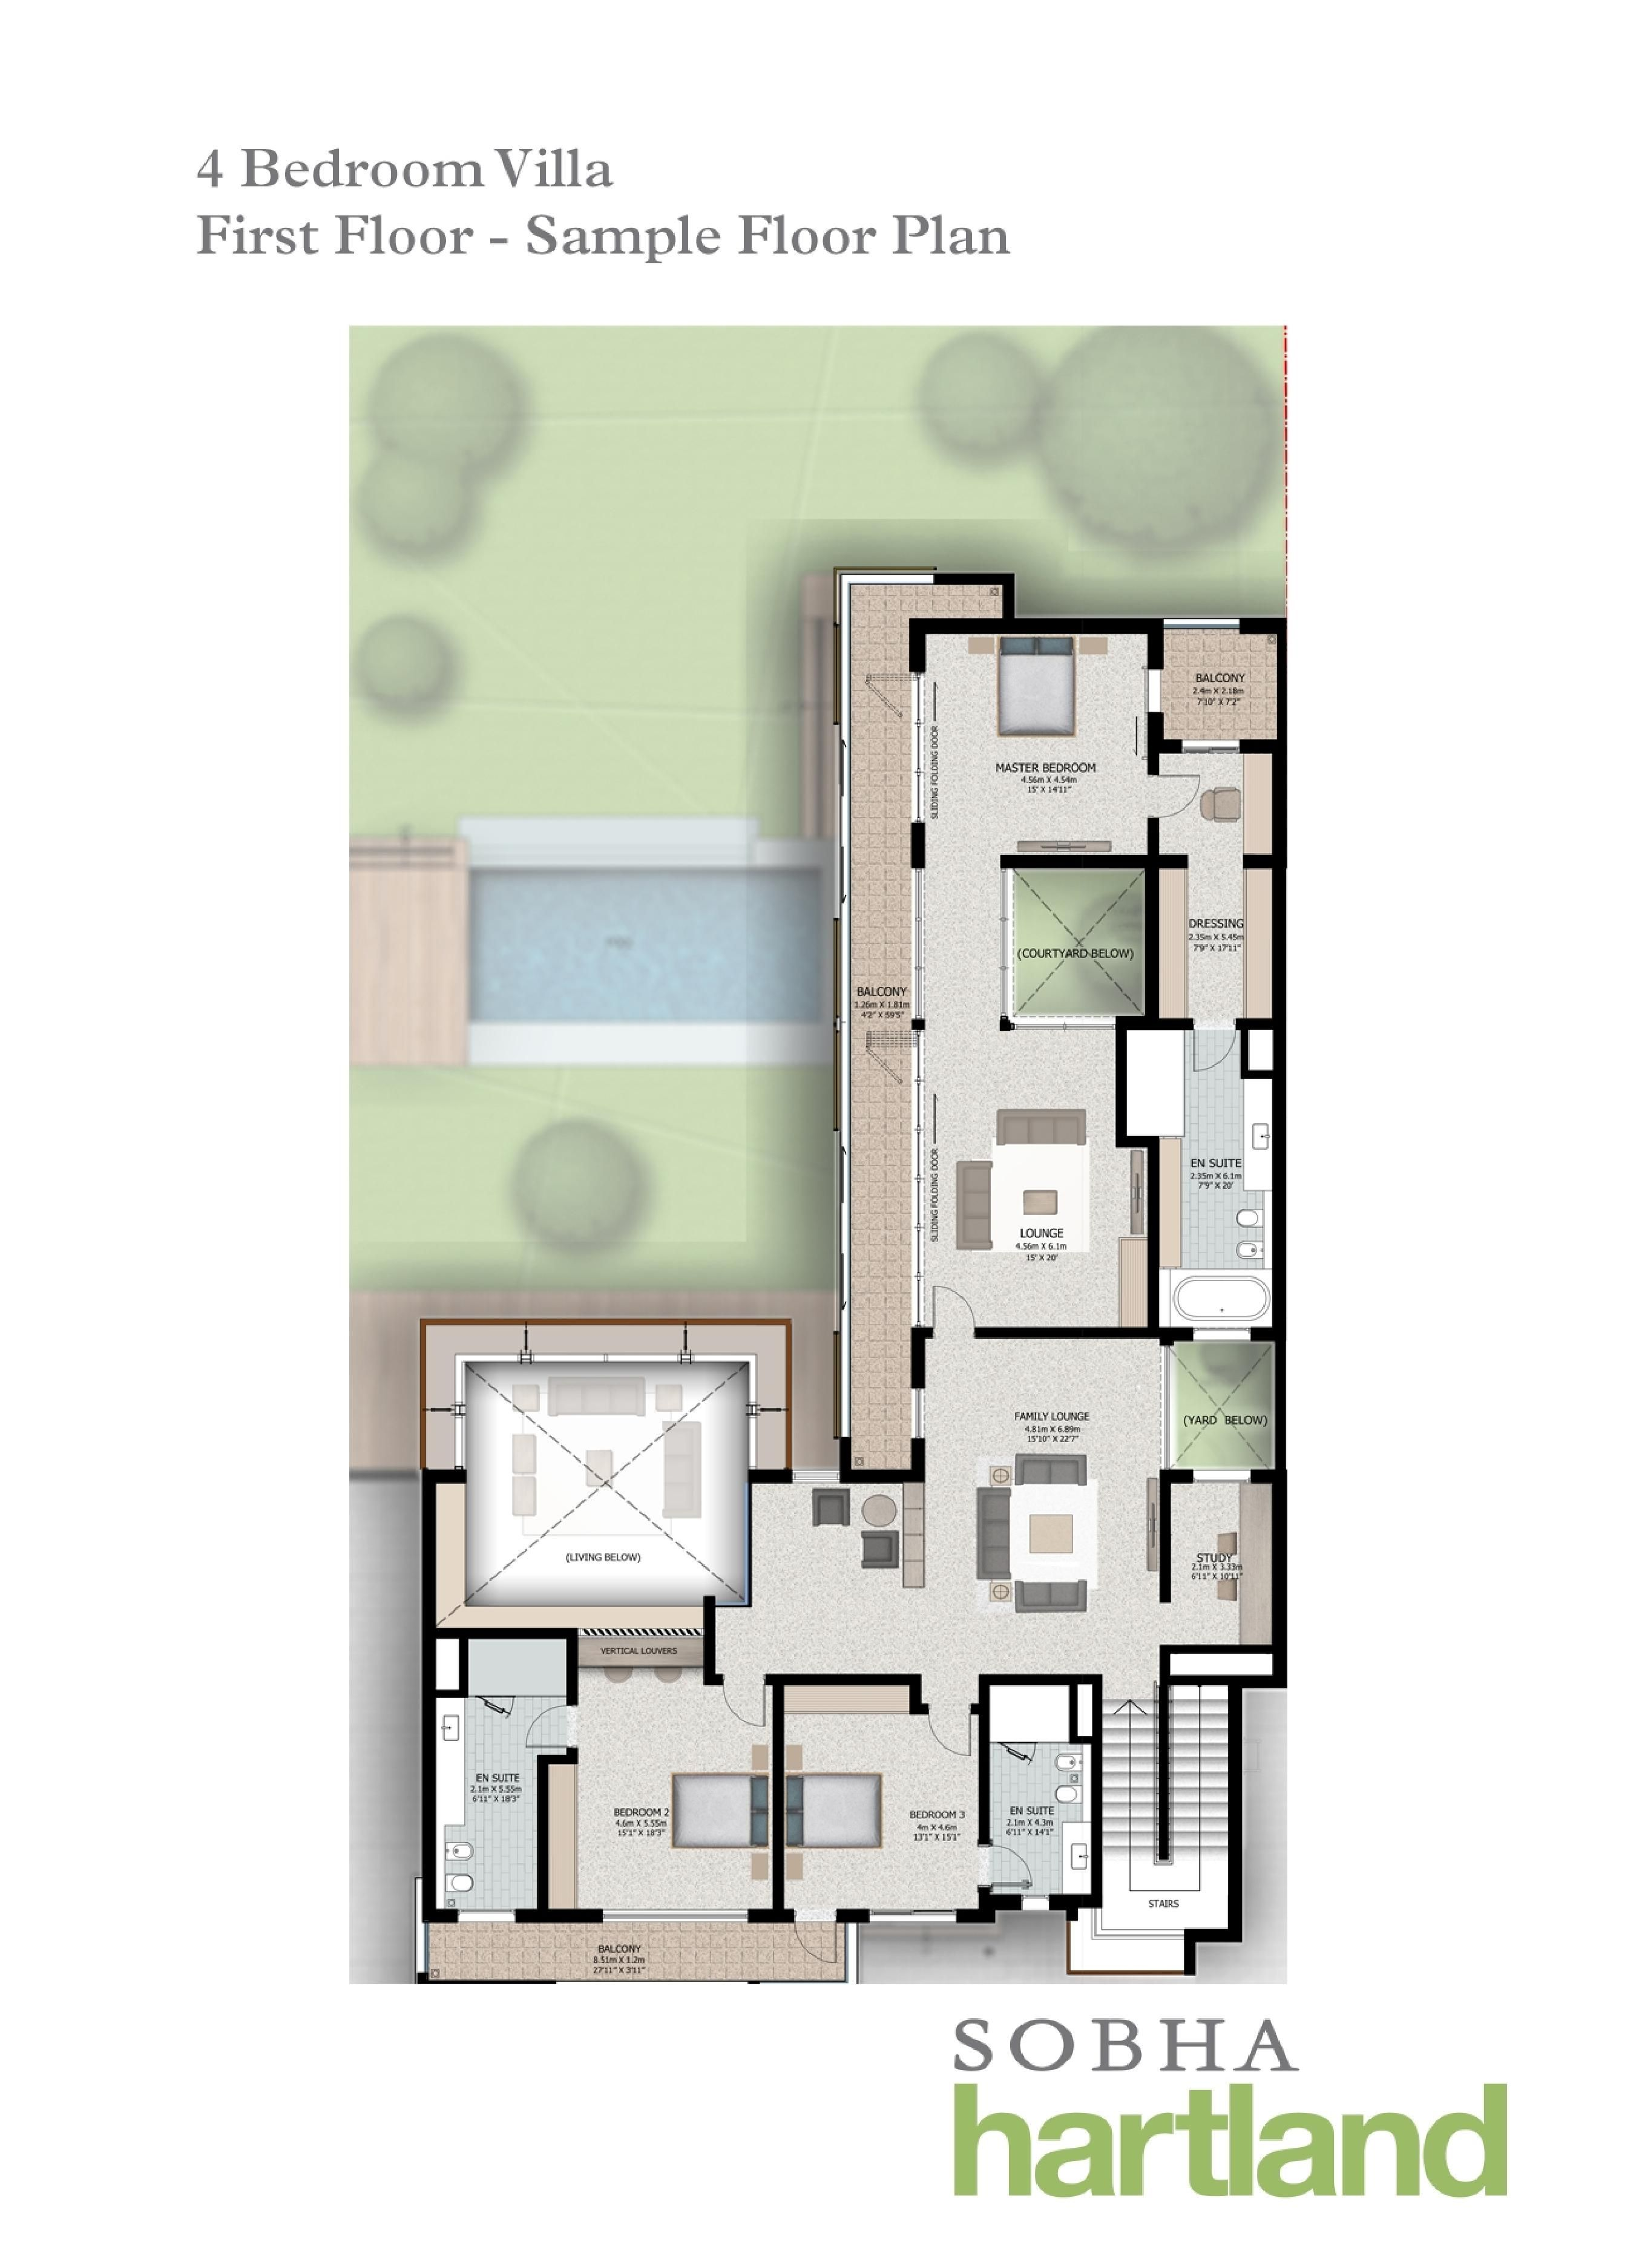 Sobha Hartland Villa Plans Villa Plan Floor Plans Luxury Homes Dream Houses